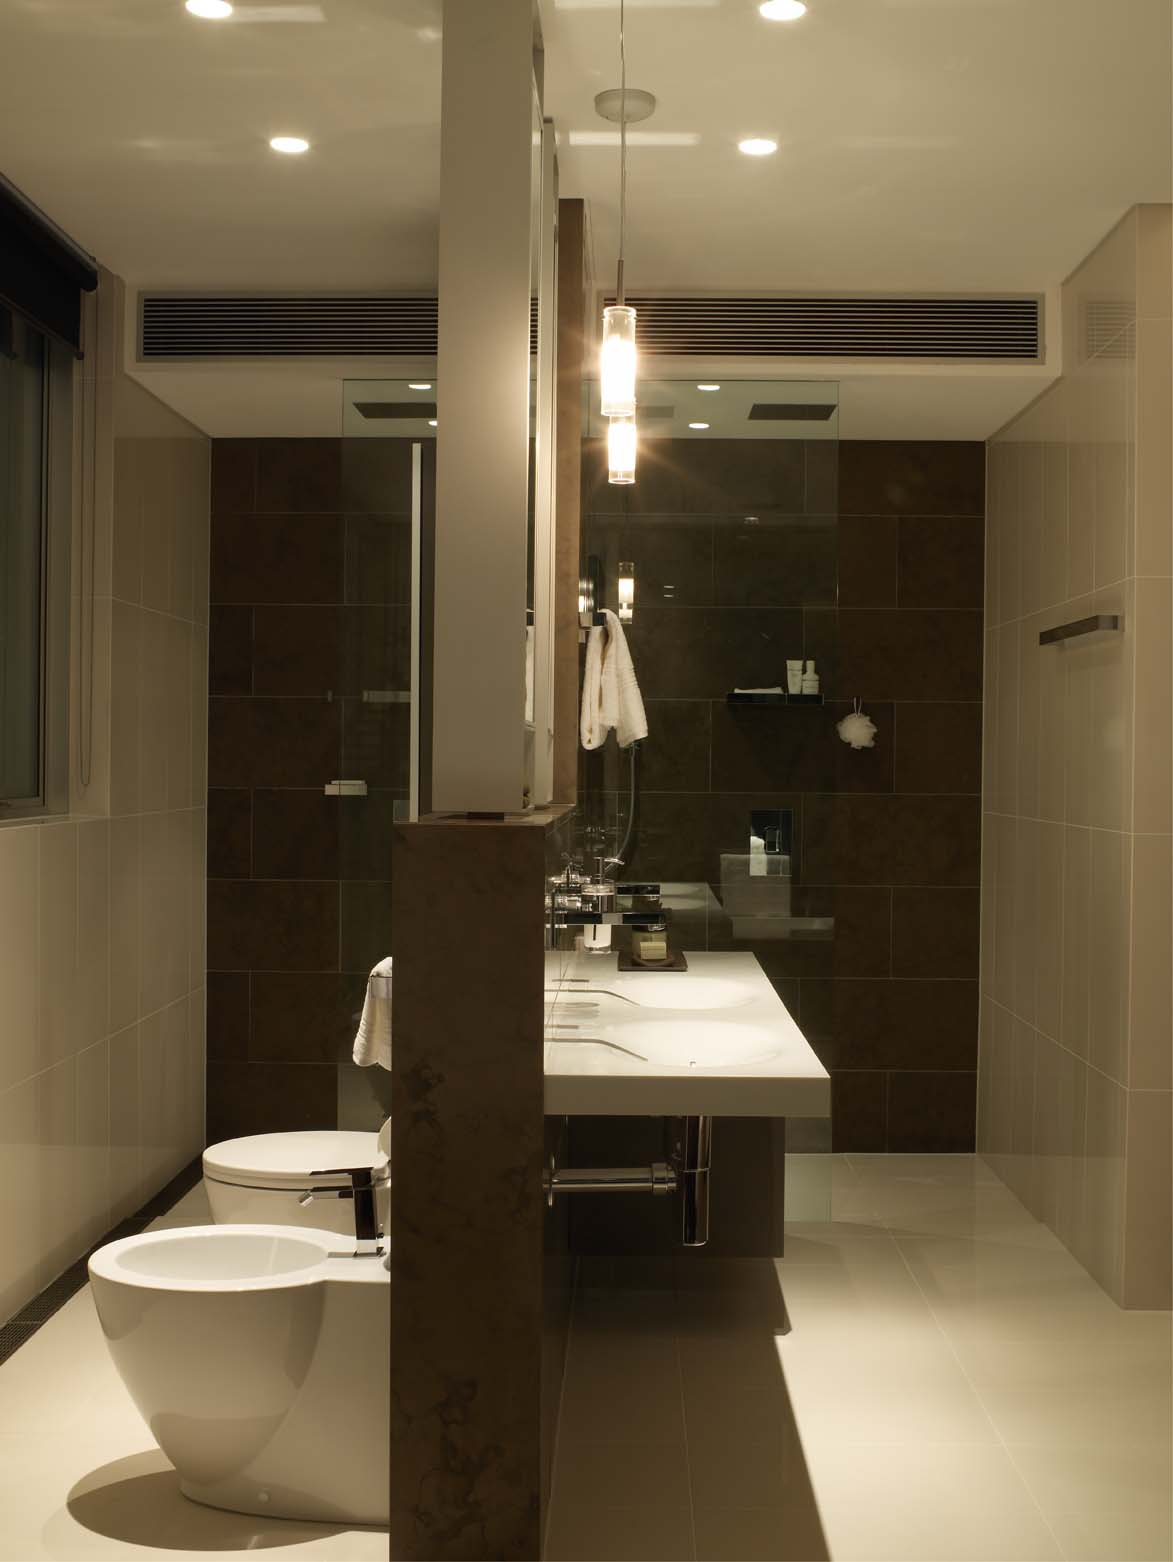 Minosa sensory interior delight by minosa Ensuite bathroom design layout